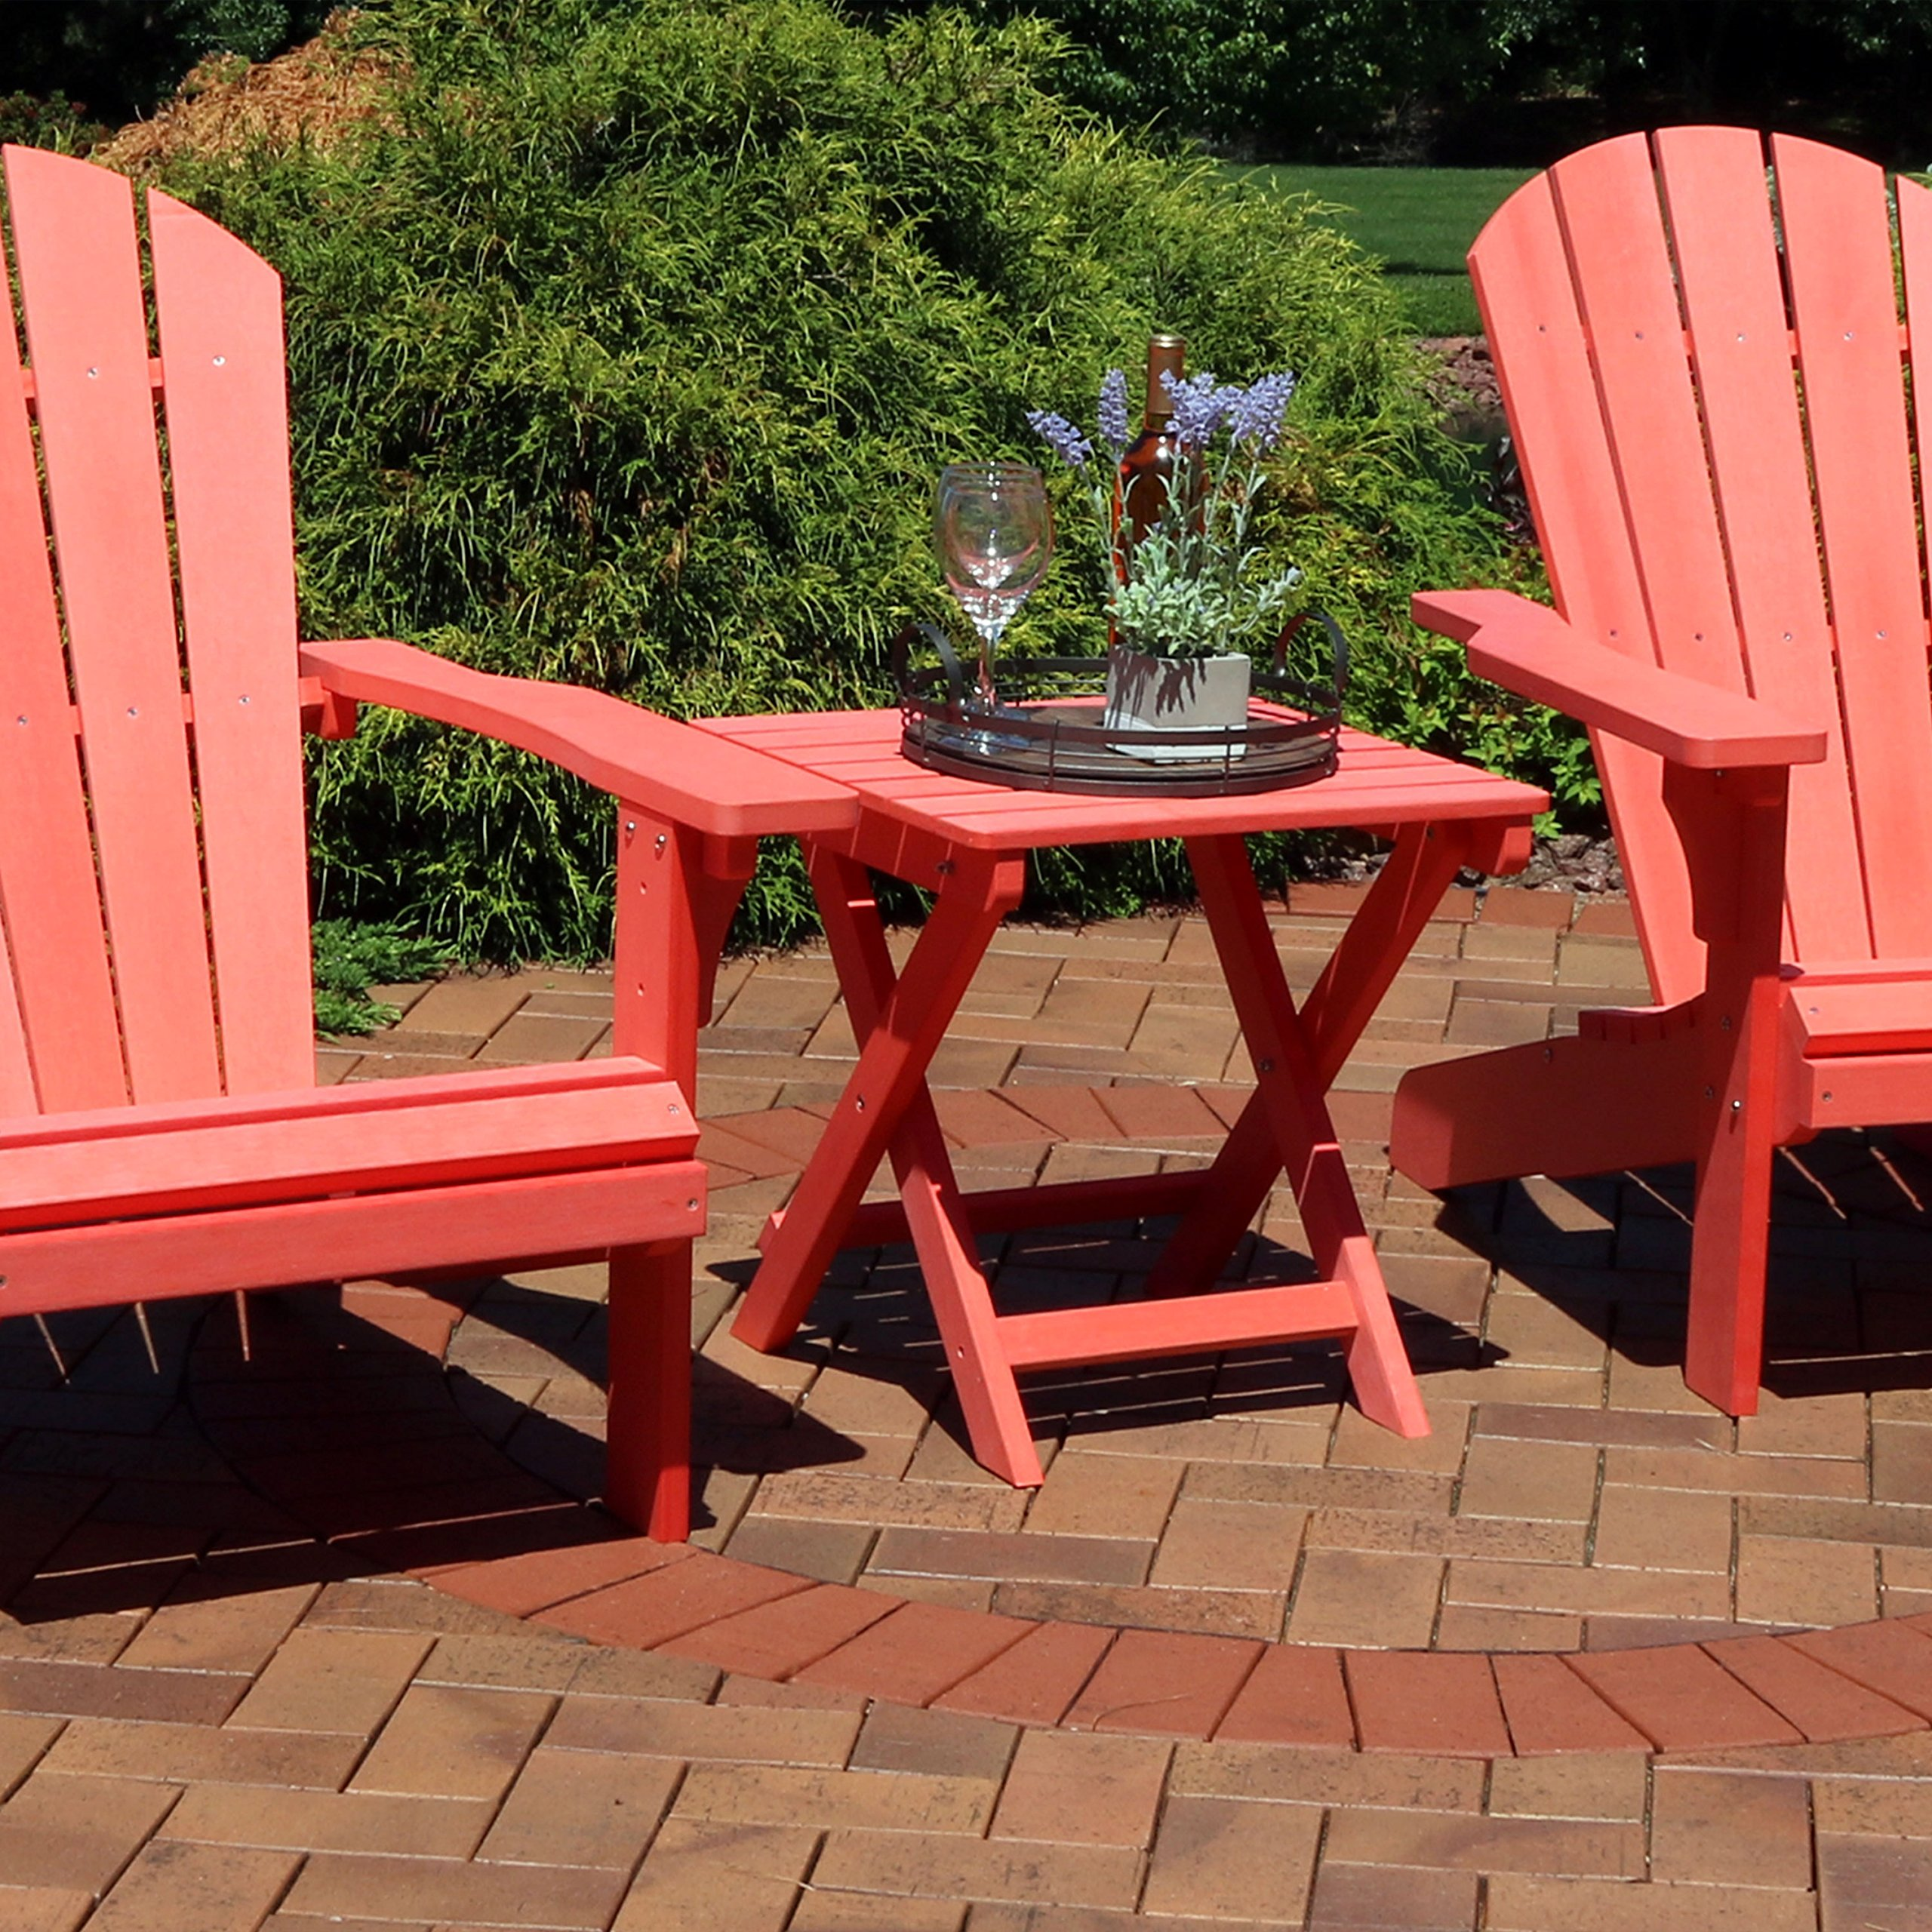 Sunnydaze All-Weather Folding Patio Side Table, Faux Wood Design, Salmon by Sunnydaze Decor (Image #2)